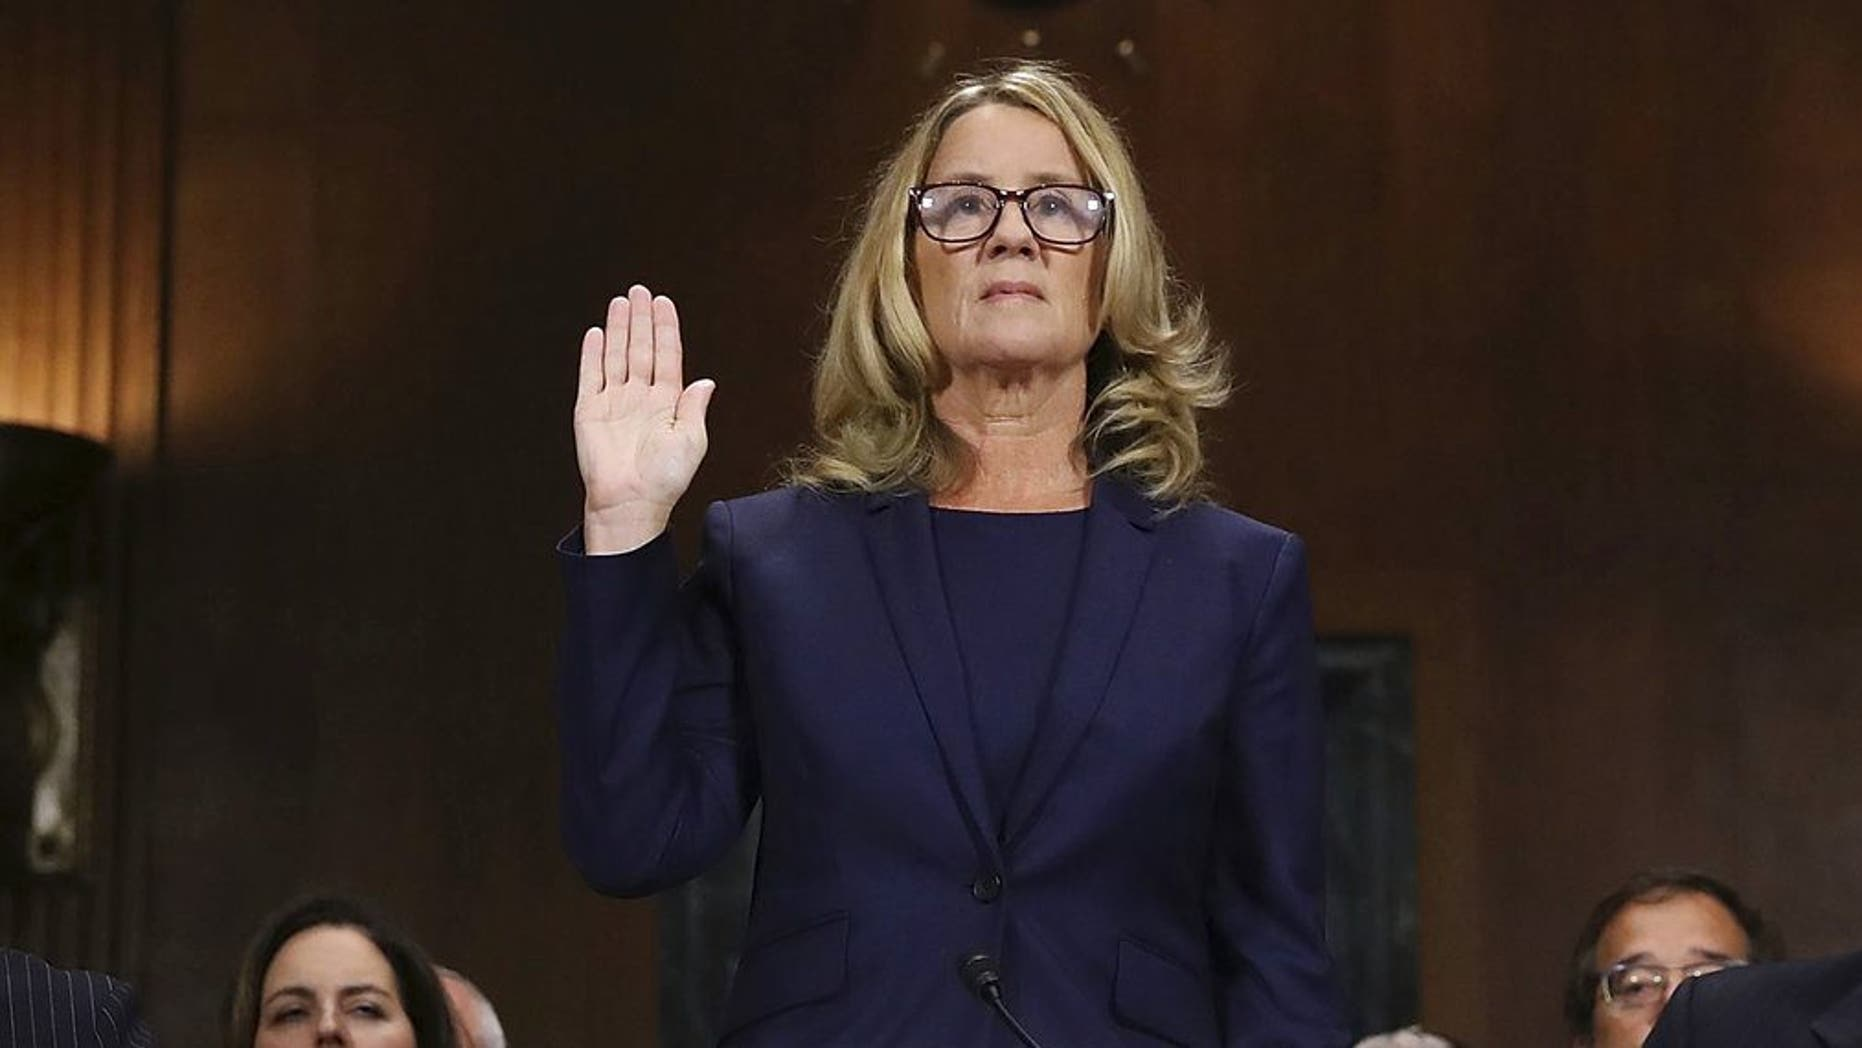 Christine Blasey Ford is sworn in before the Senate Judiciary Committee on Capitol Hill in Washington on Thursday, Sept. 27, 2018. (Win McNamee/Pool Photo via AP)